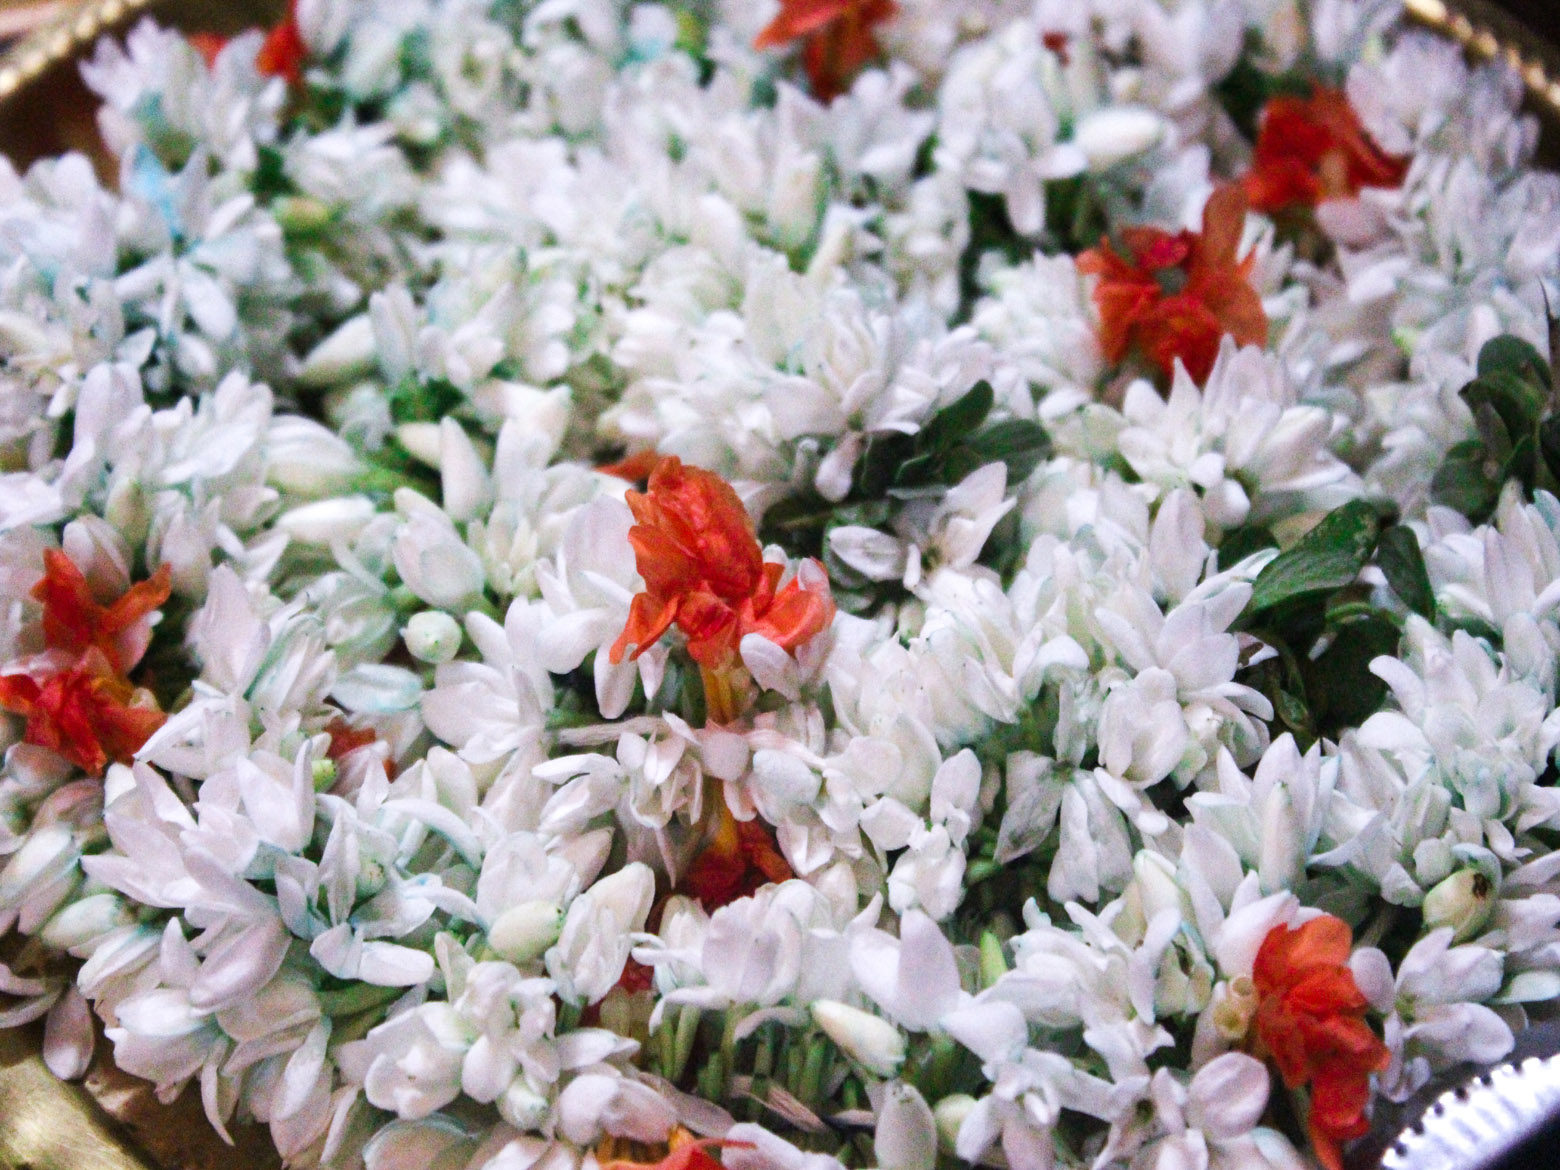 Jasmine Flower Garland Free Indian Stock Pictures Download For